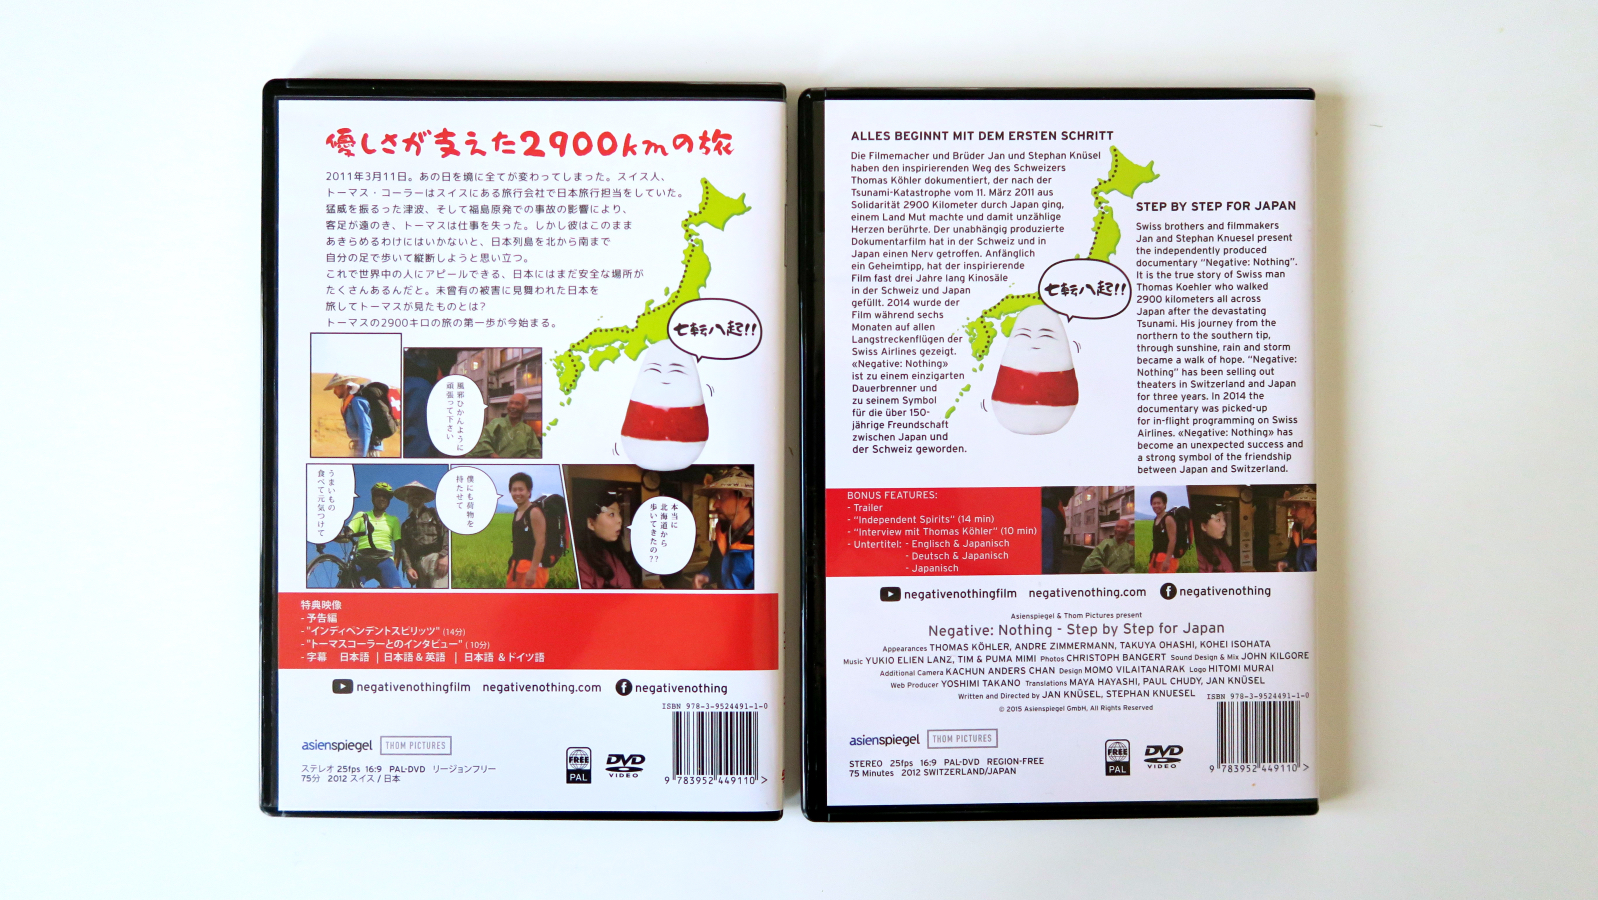 We ship the DVD with two covers (English/German and Japanese).